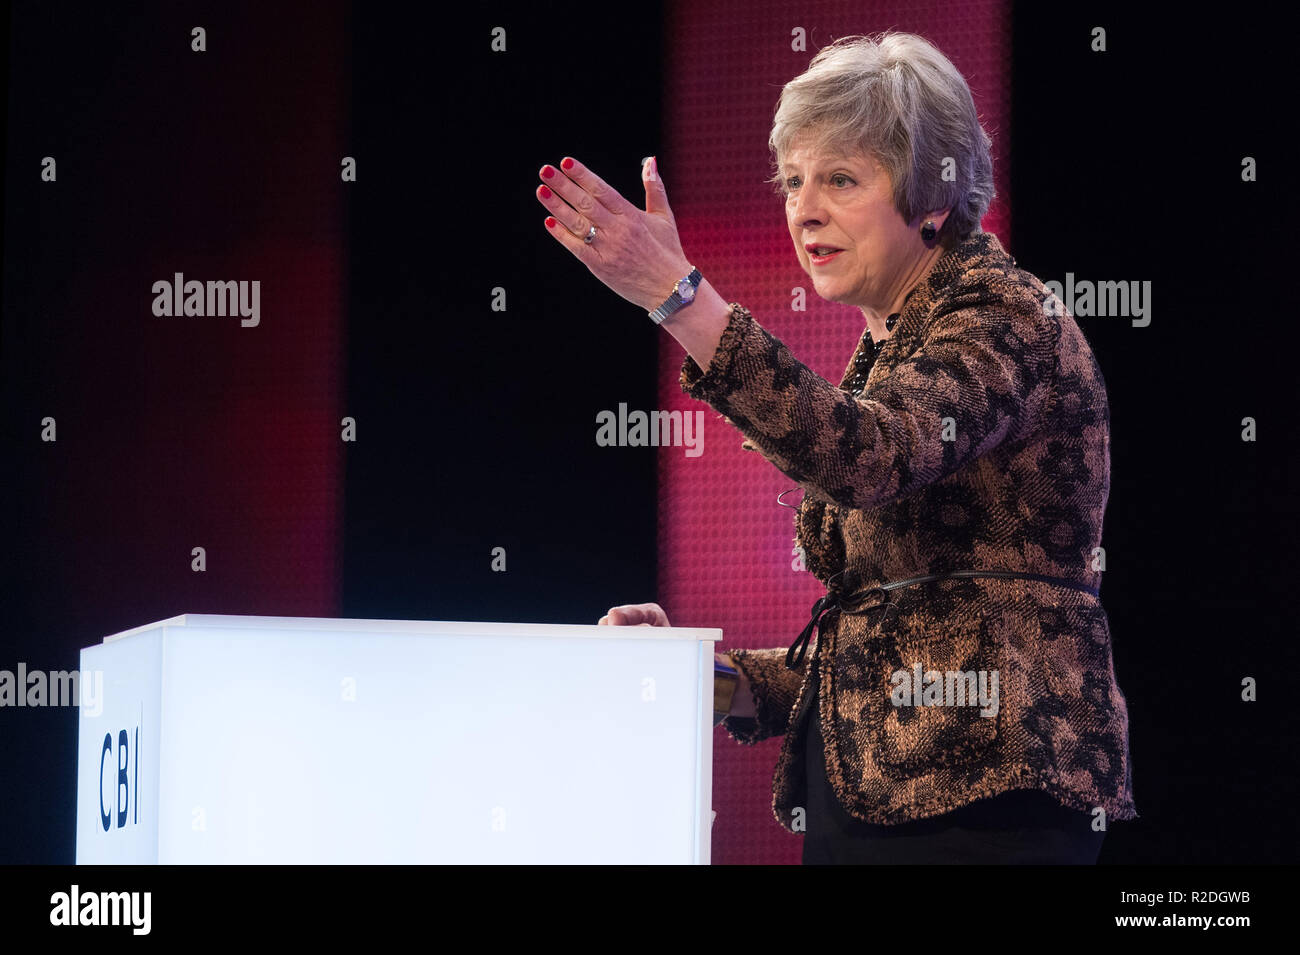 London, Britain. 19th Nov, 2018. British Prime Minister Theresa May delivers a keynote speech at the annual conference of the Confederation of British Industry (CBI) in London, Britain, on Nov. 19, 2018. Theresa May on Monday enlisted British business leaders to back her much-criticized Brexit deal, insisting that she would not make any change to the draft divorce agreement between London and Brussels. Credit: Ray Tang/Xinhua/Alamy Live News - Stock Image